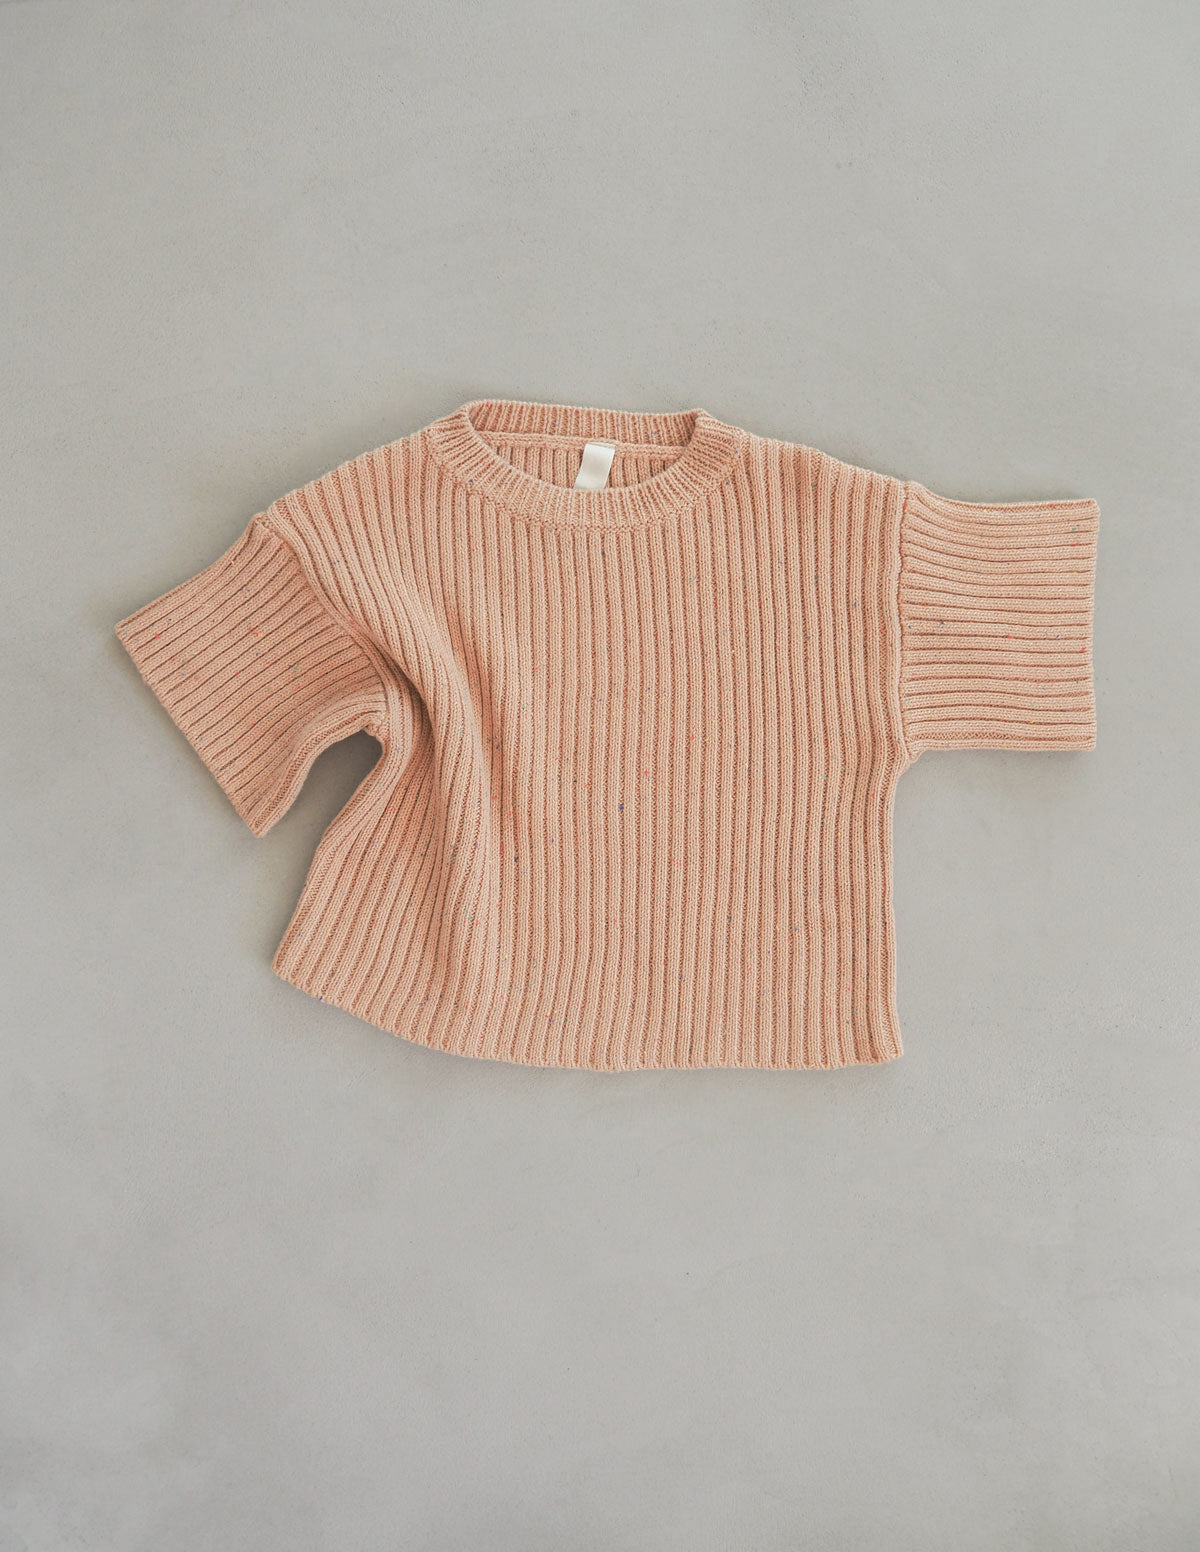 The Chunky Sprinkle Tee - Toffee